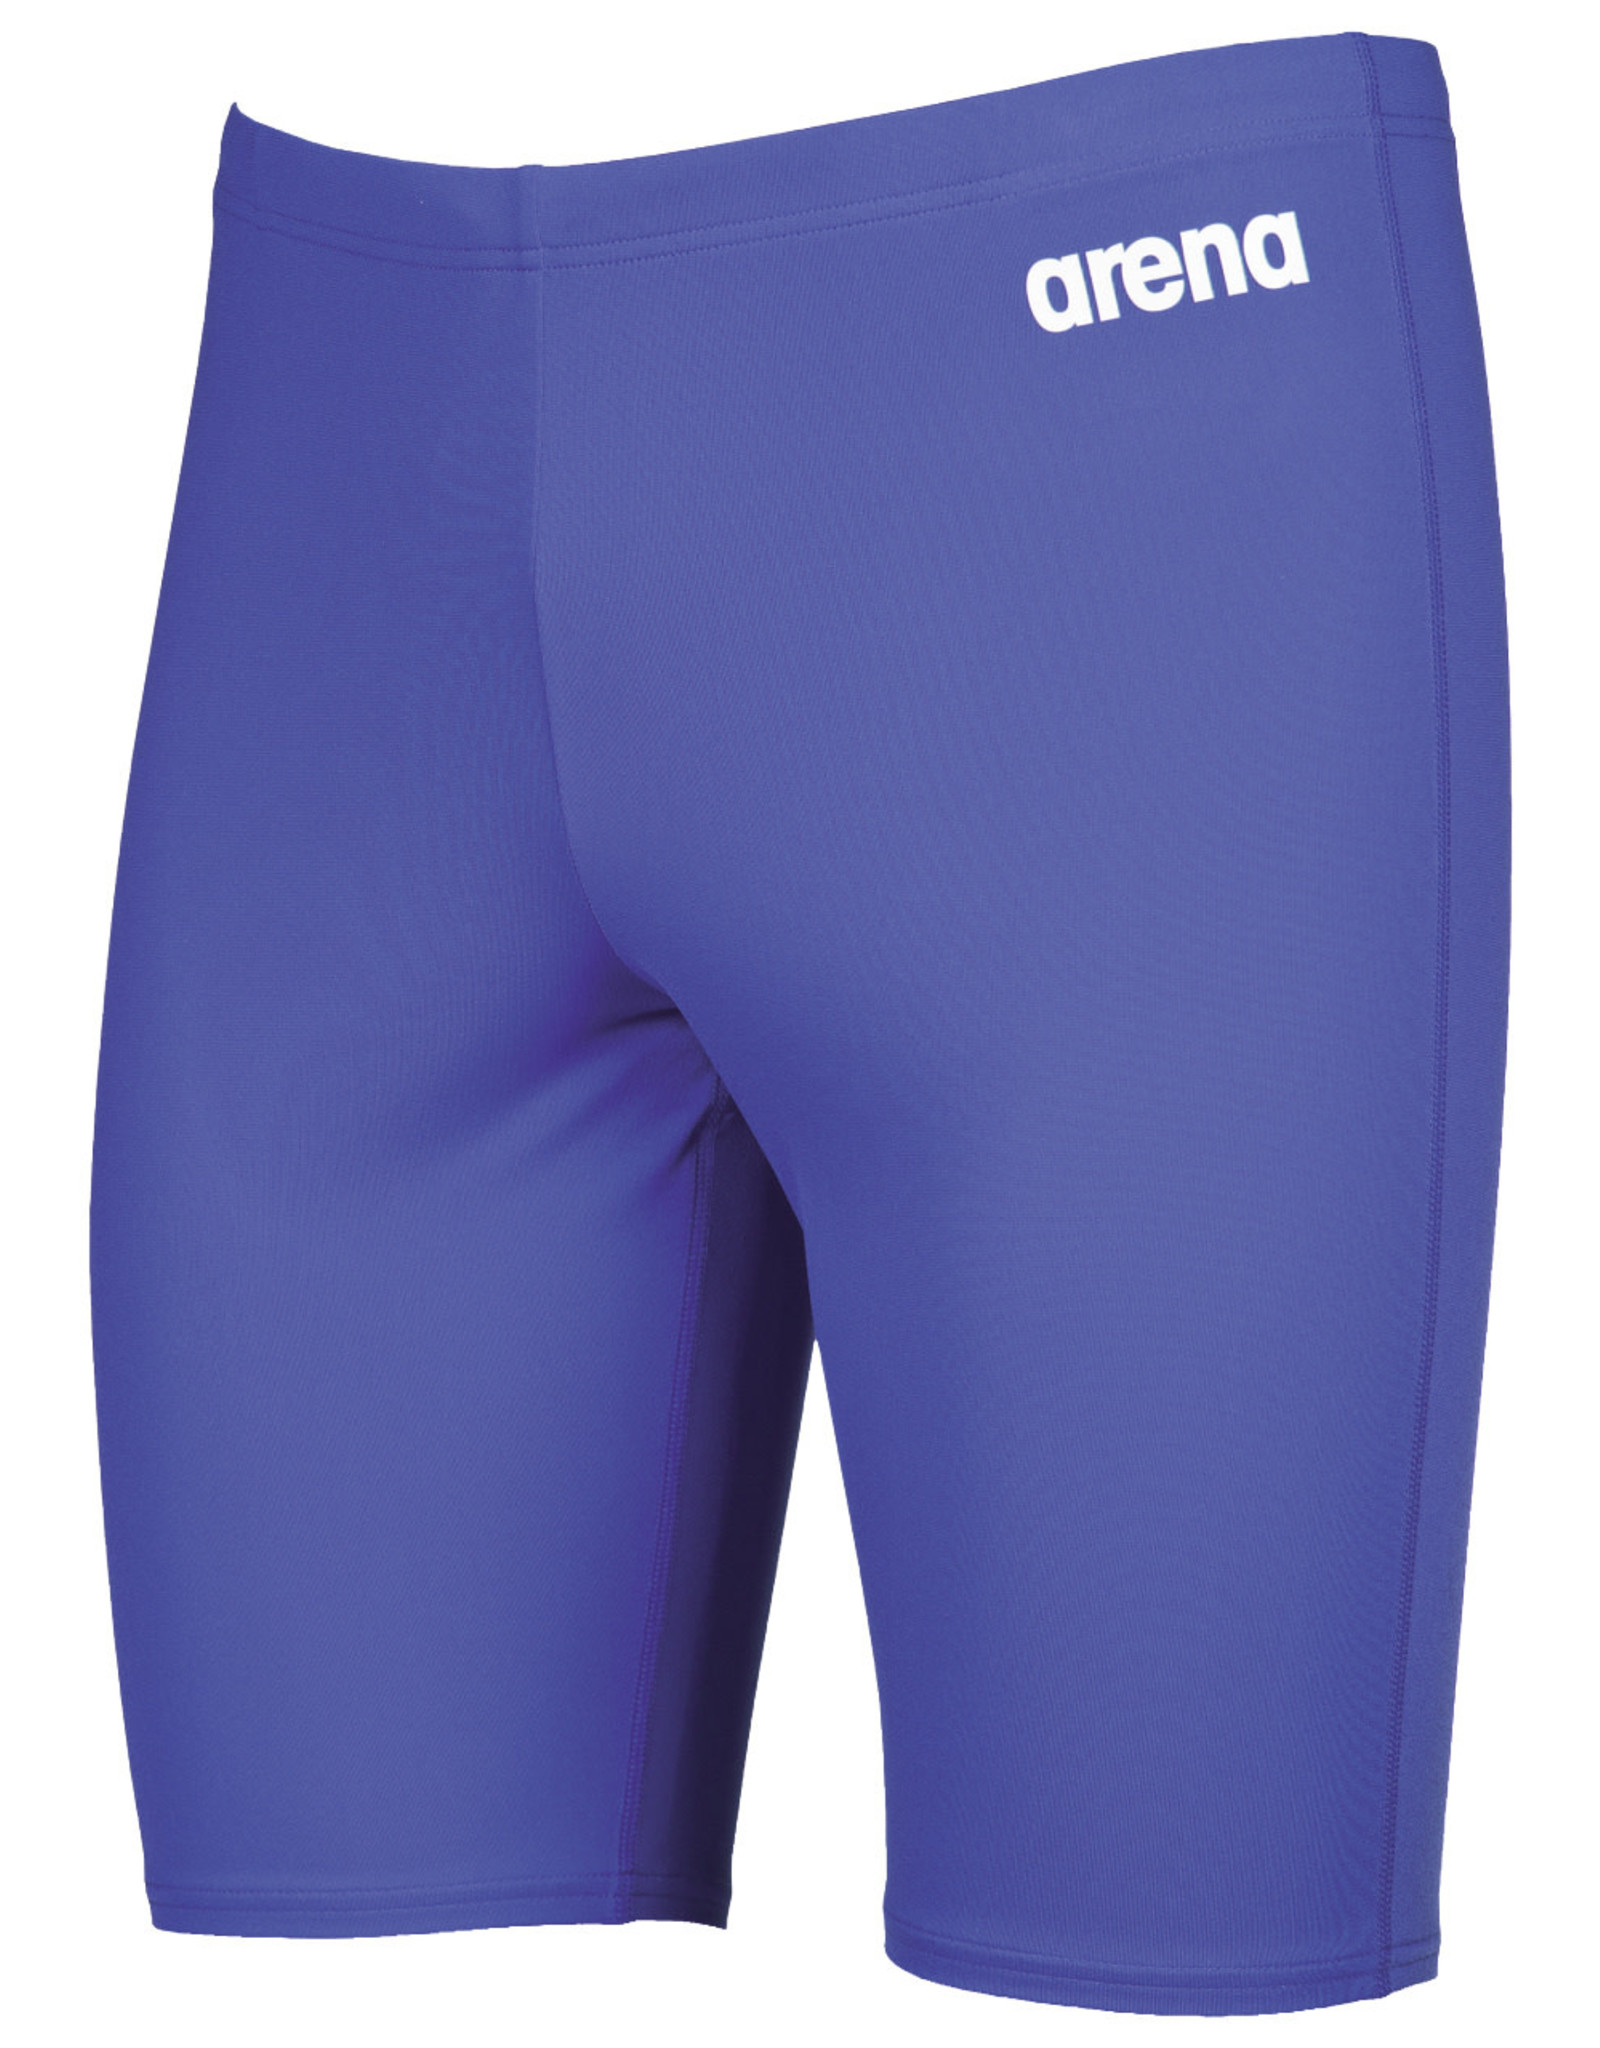 Arena M Solid Jammer - 2A256